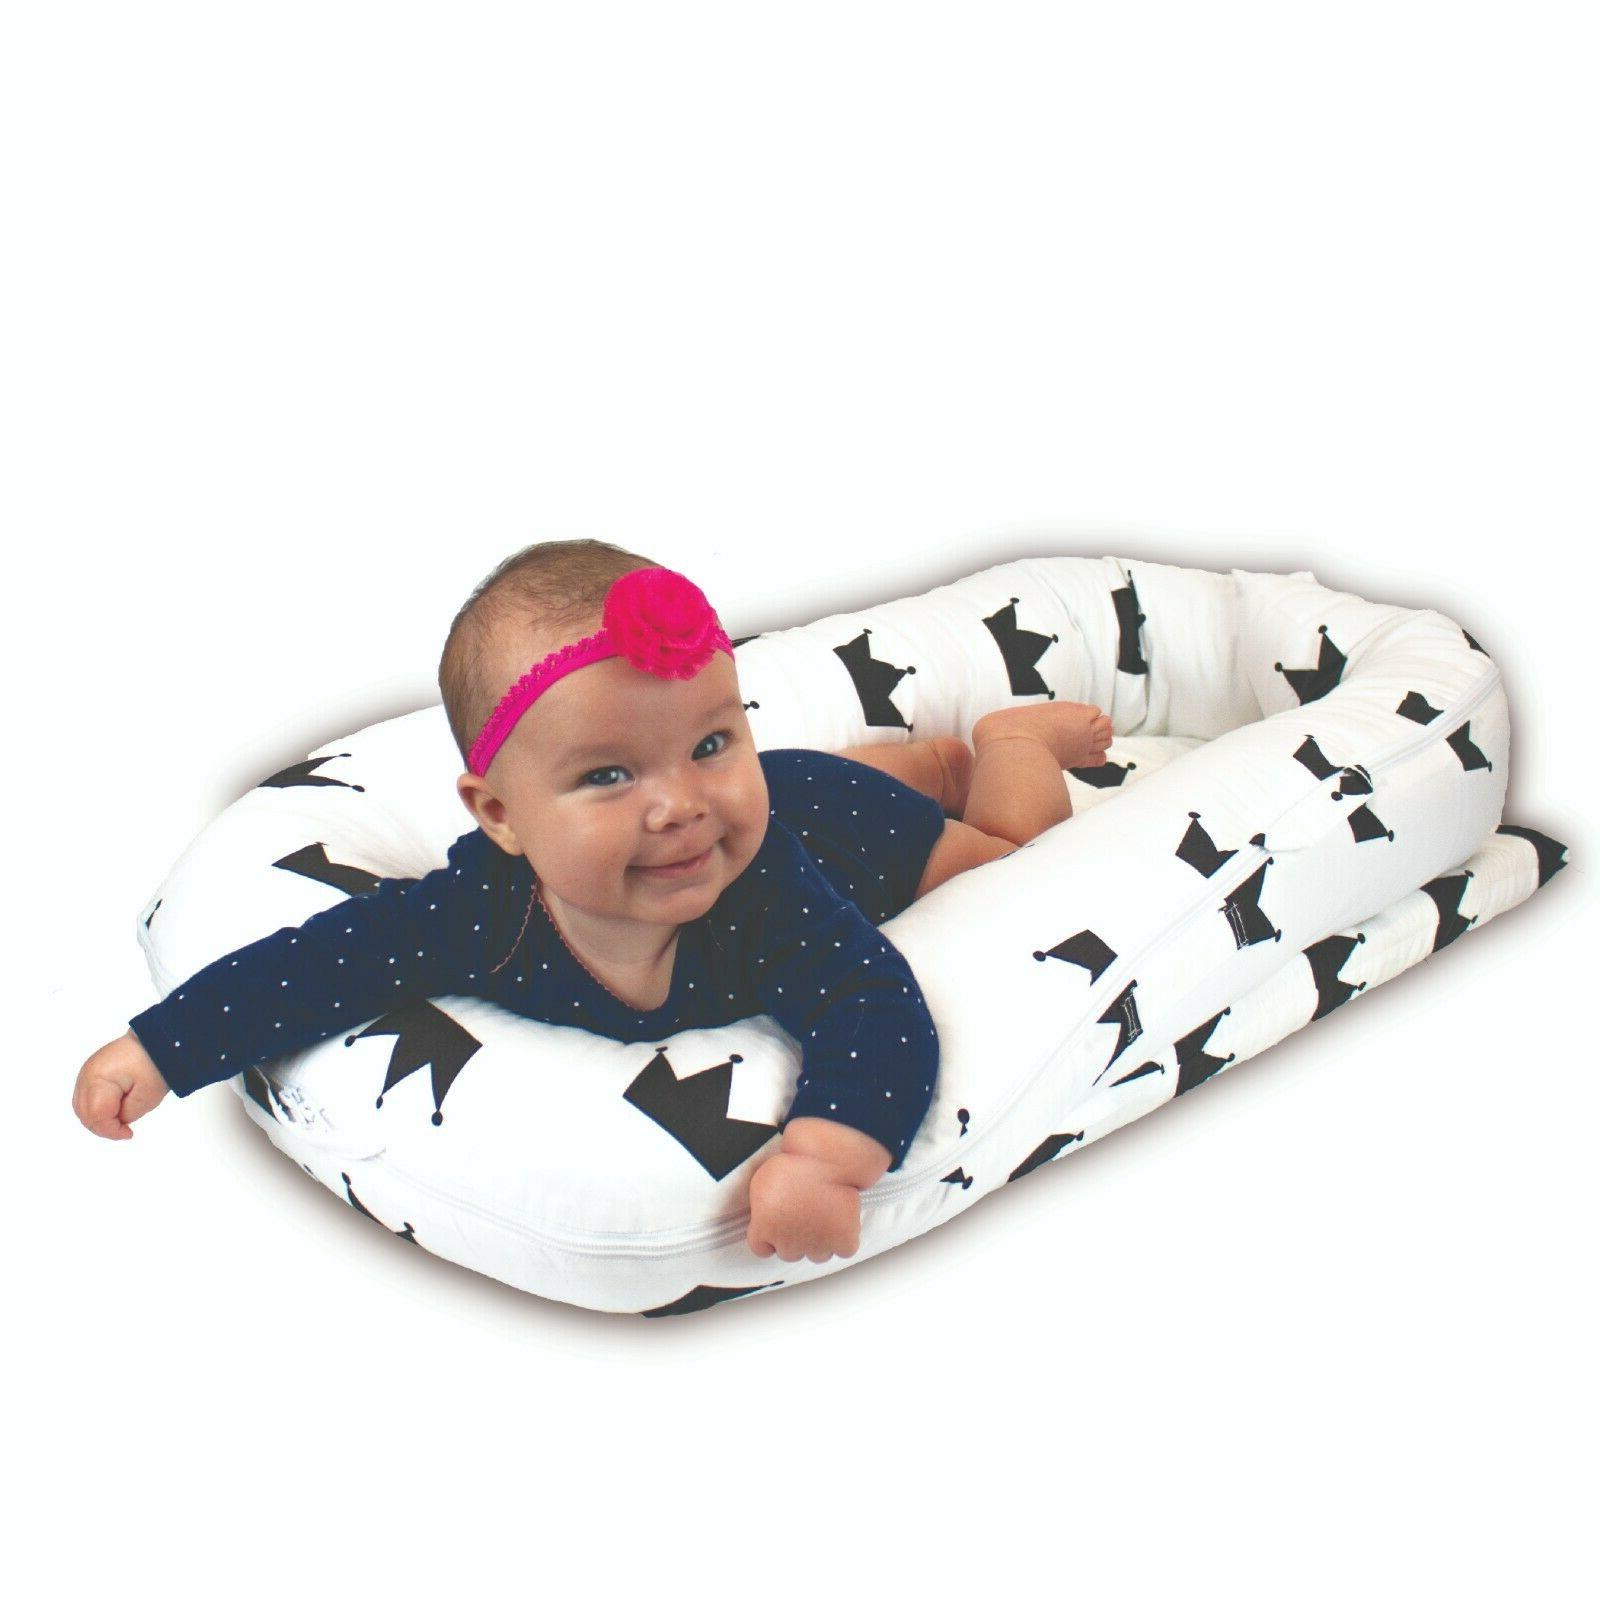 Baby Lounger Nest, Comfortable Sturdy Bed, Infants